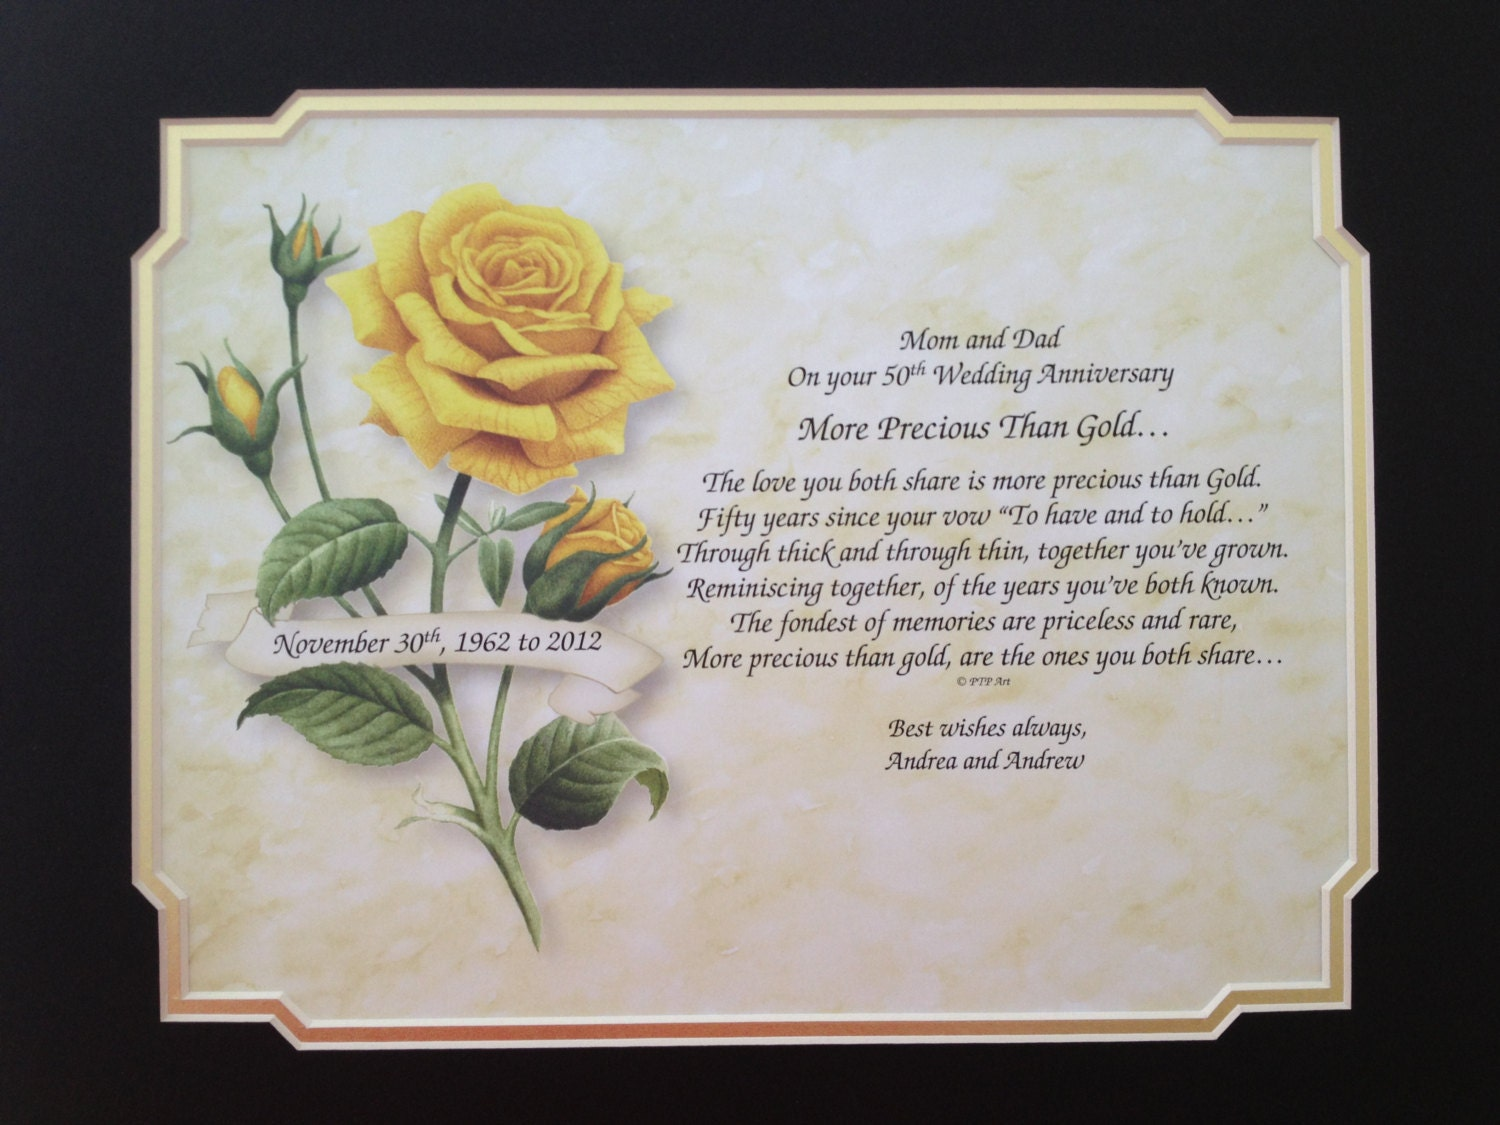 Golden Wedding Gift Ideas For Parents: 50th ANNIVERSARY Gift Idea Personalized Poem By